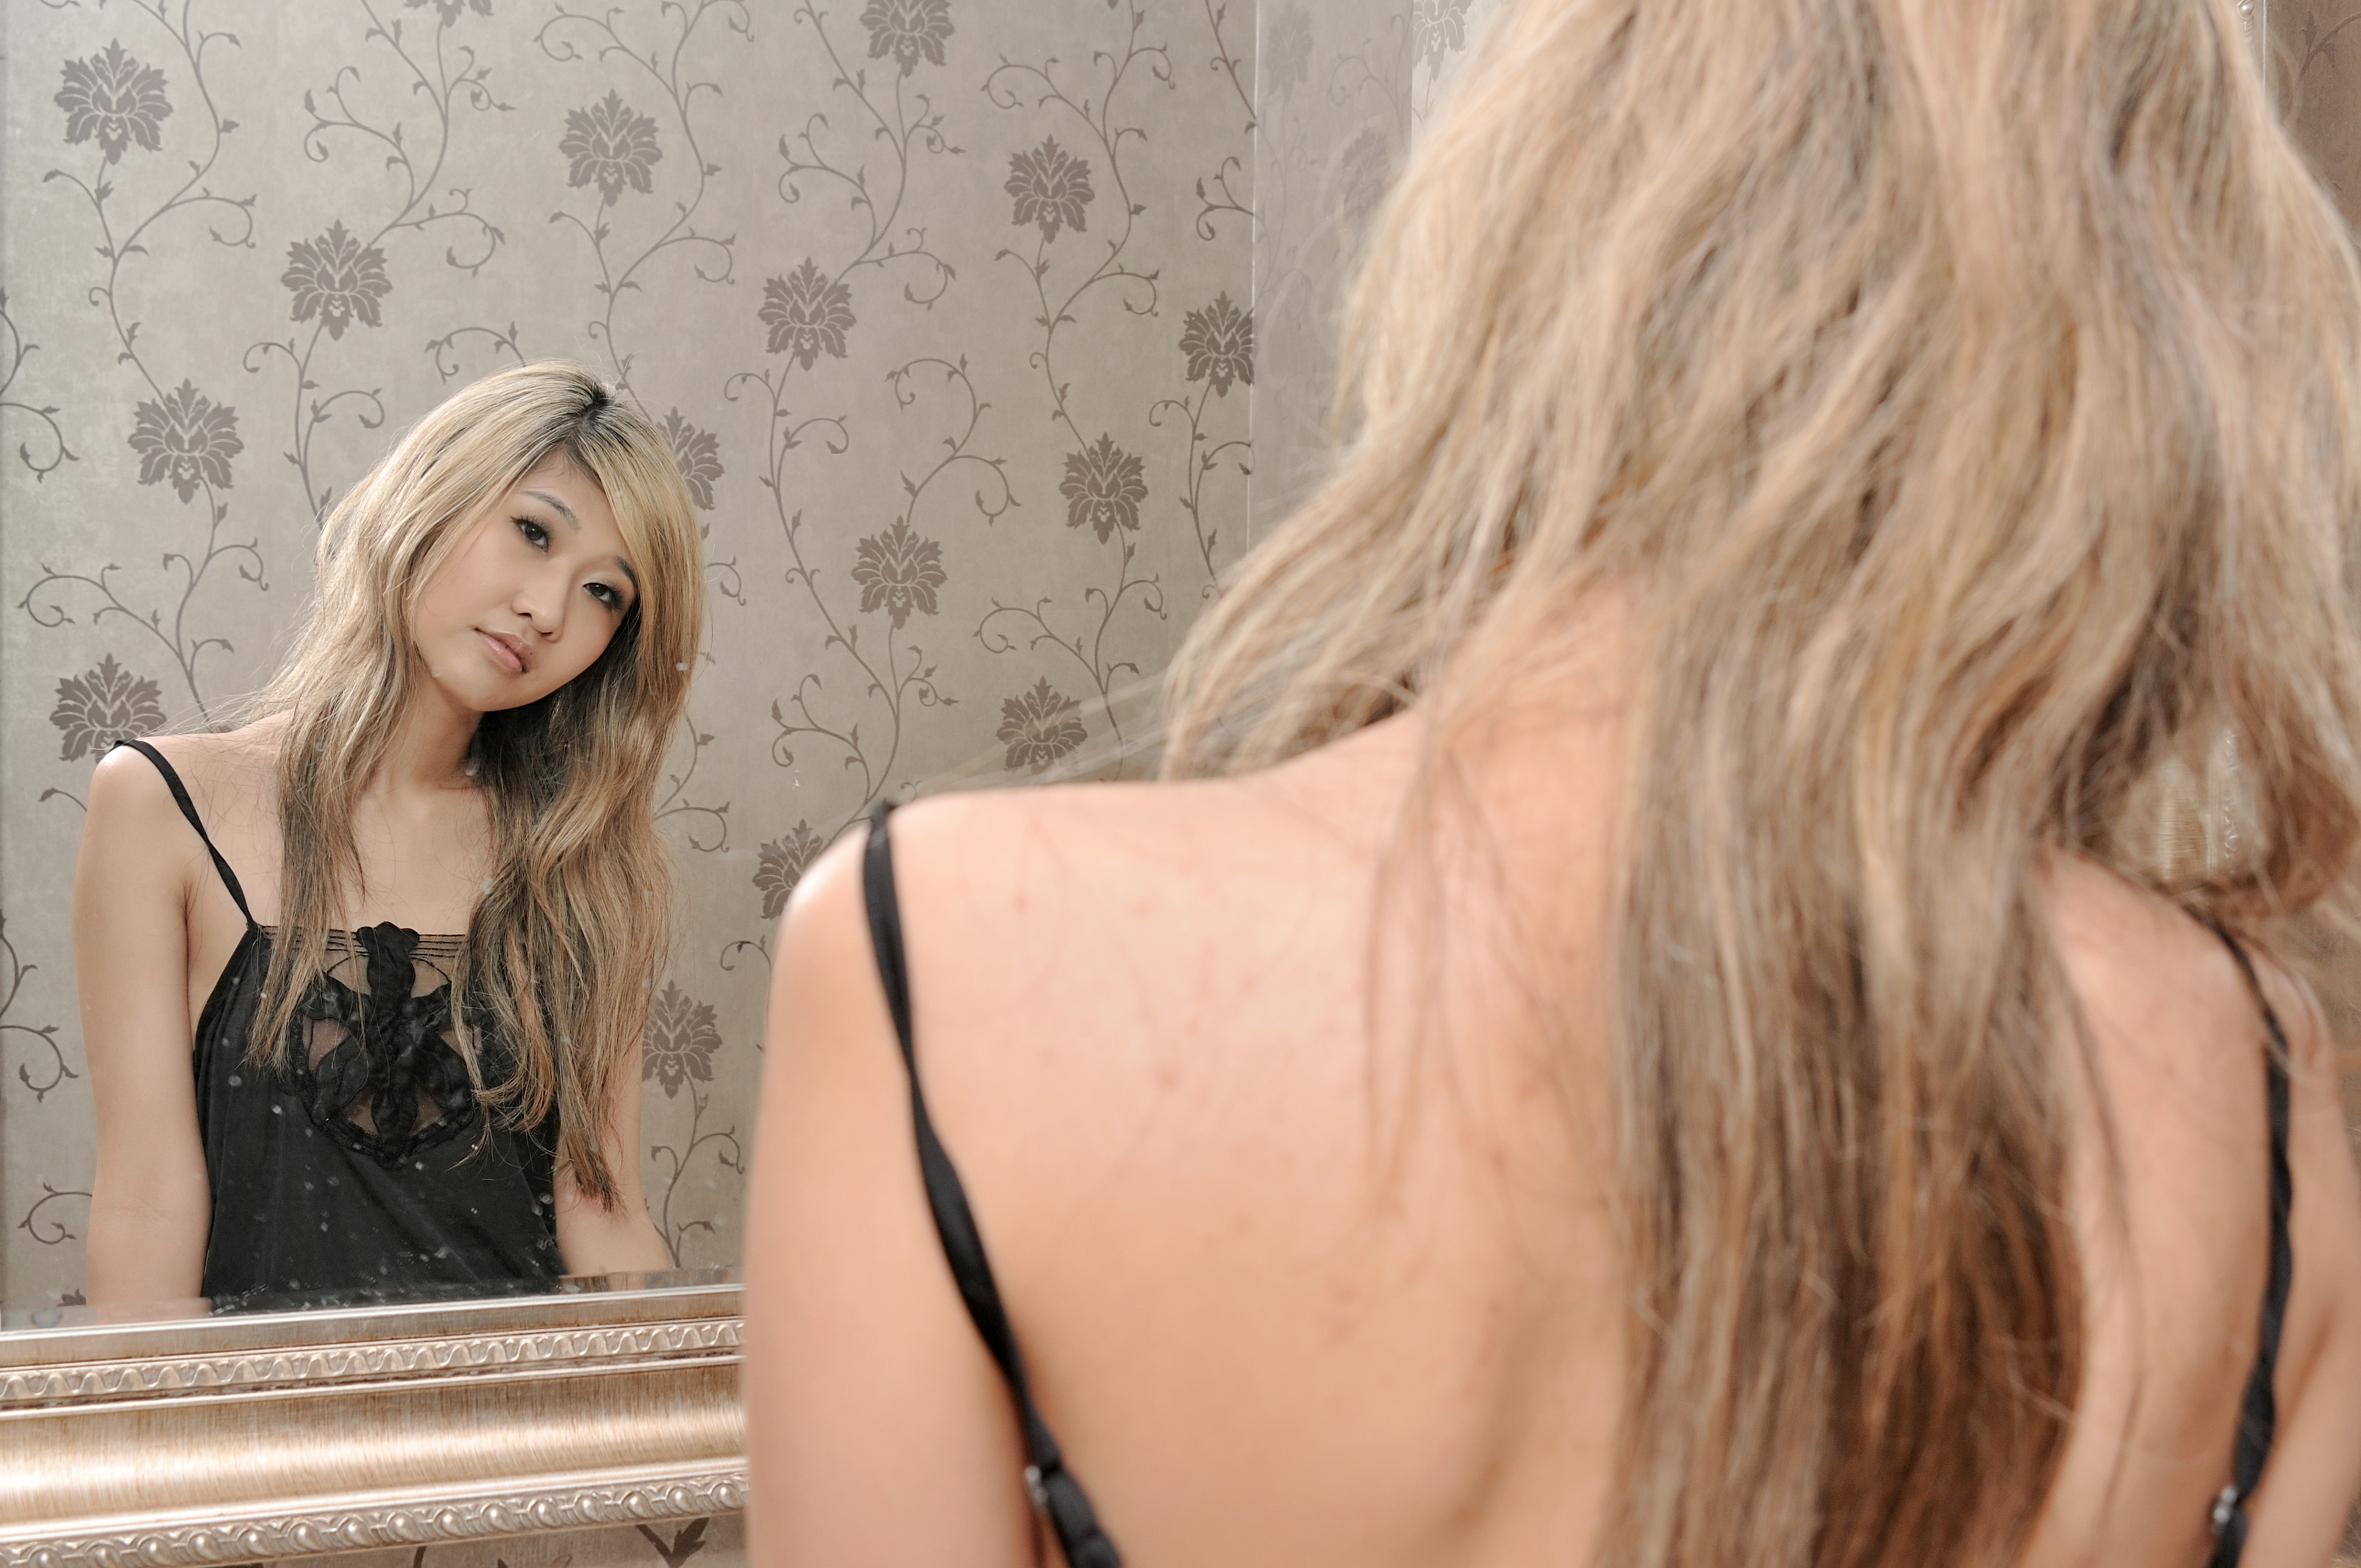 Girl in the mirror by caenerys